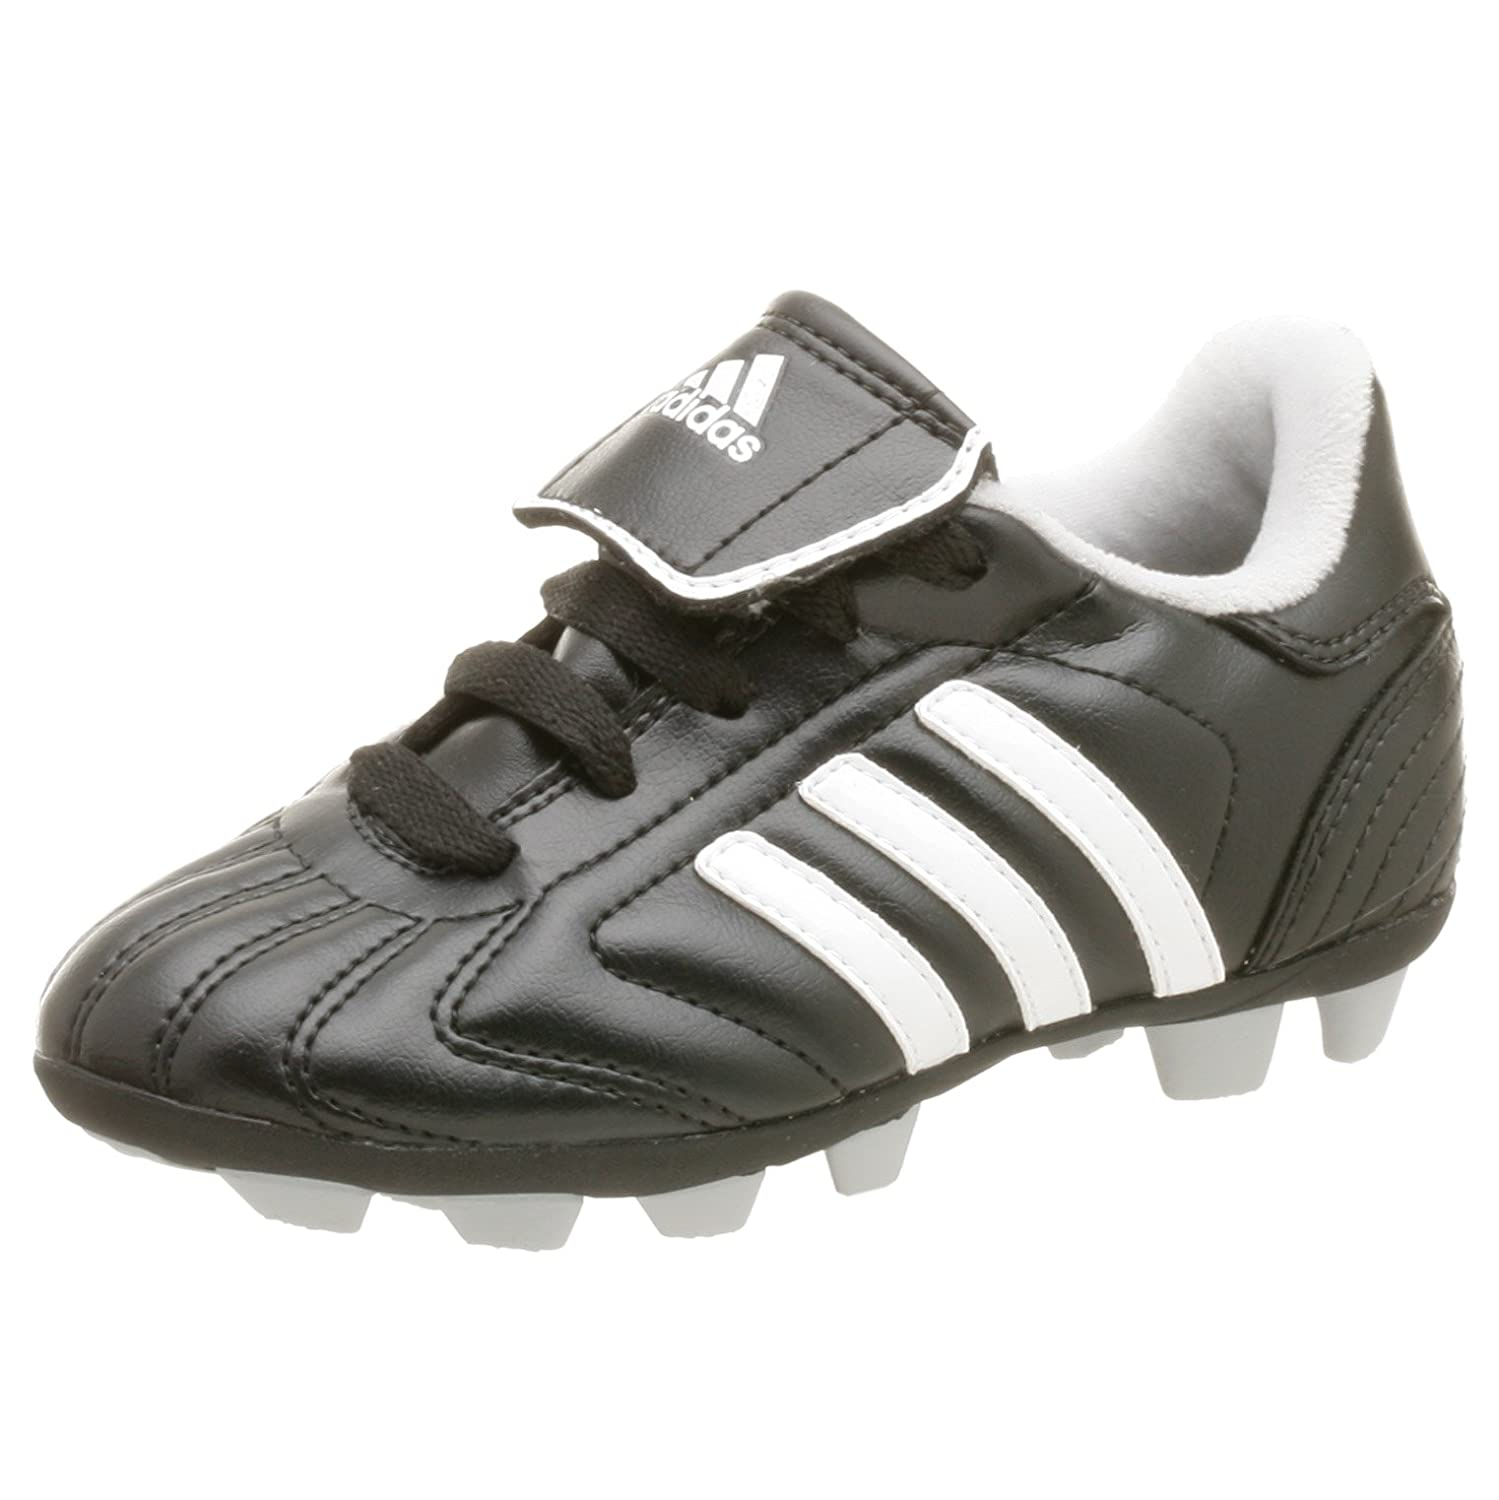 adidas shoes for toddlers